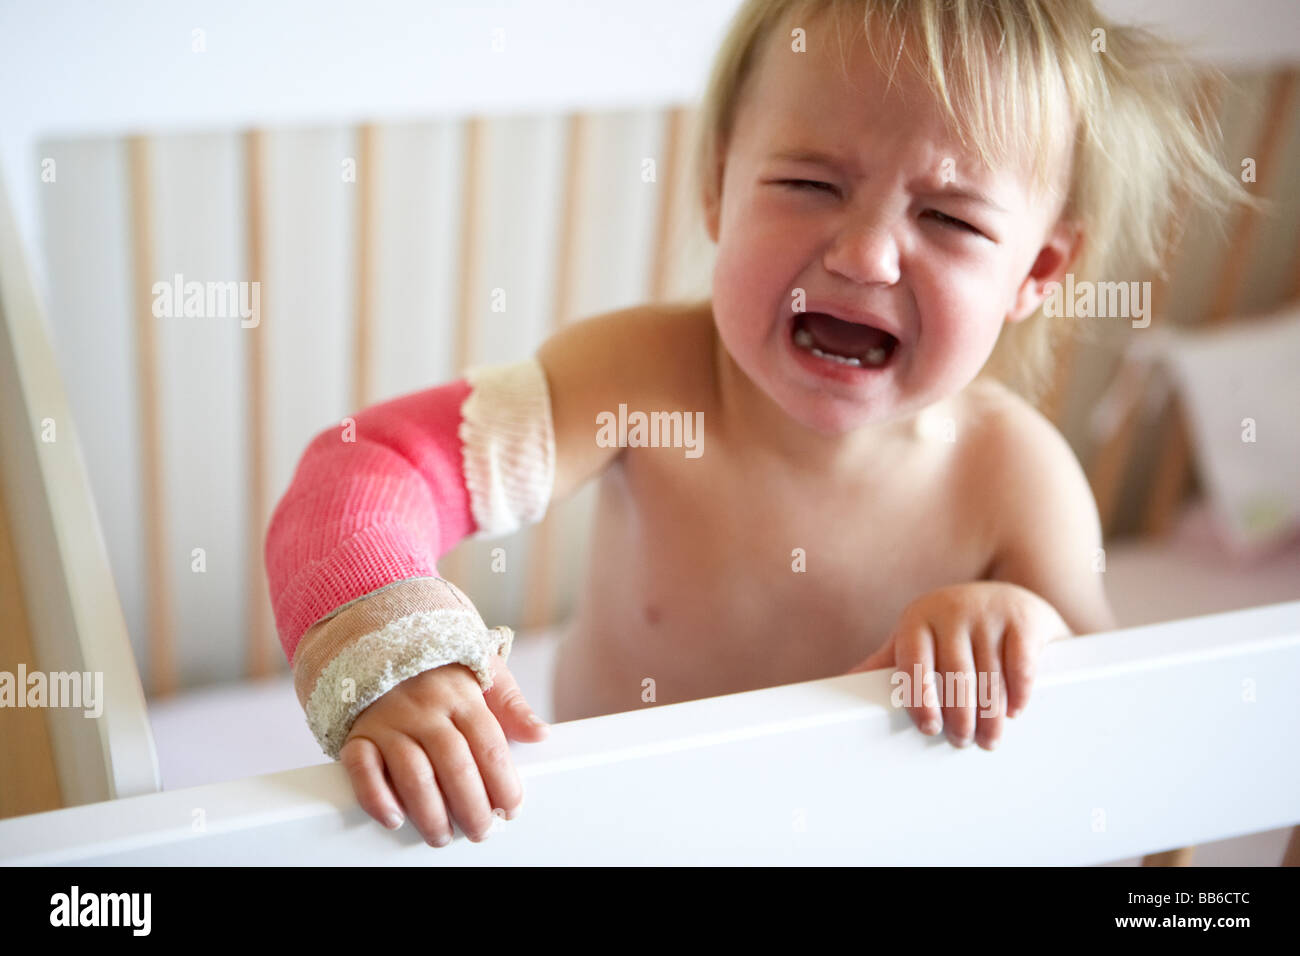 Crying Toddler With Arm In Cast Stock Foto